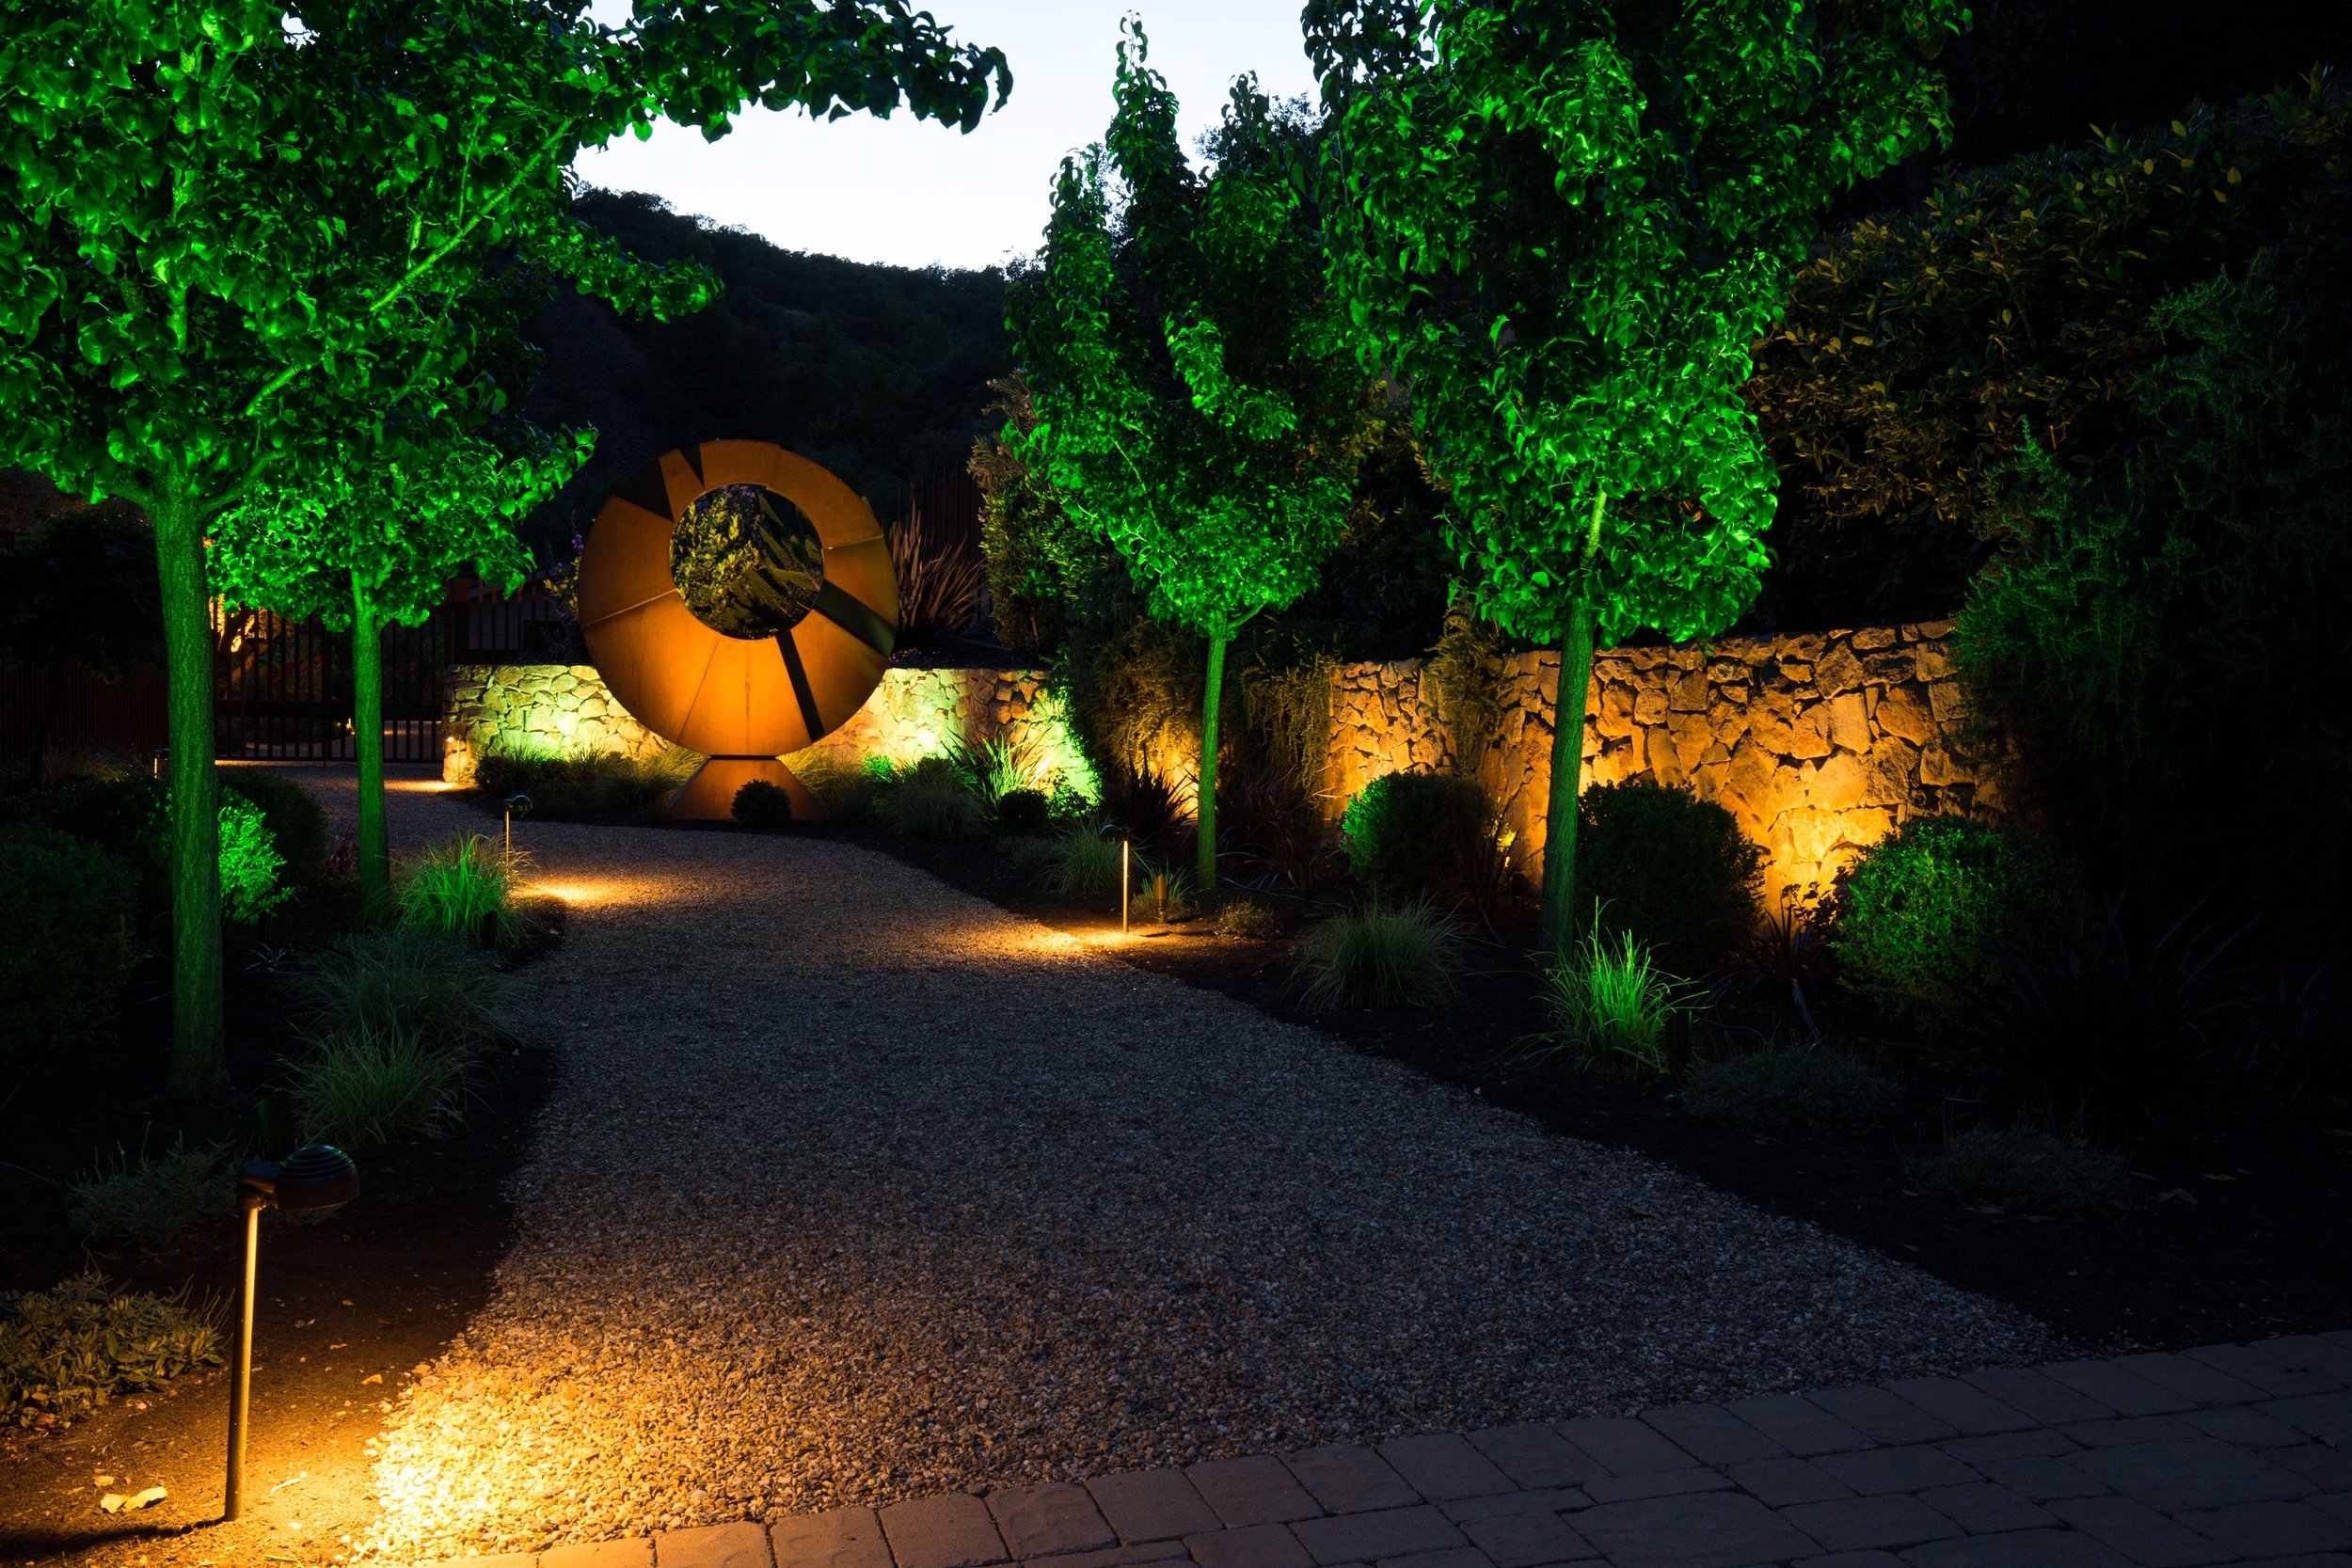 Enhance Your Outdoor Lighting with FX Luminaire's Luxor System, Now Available in PA